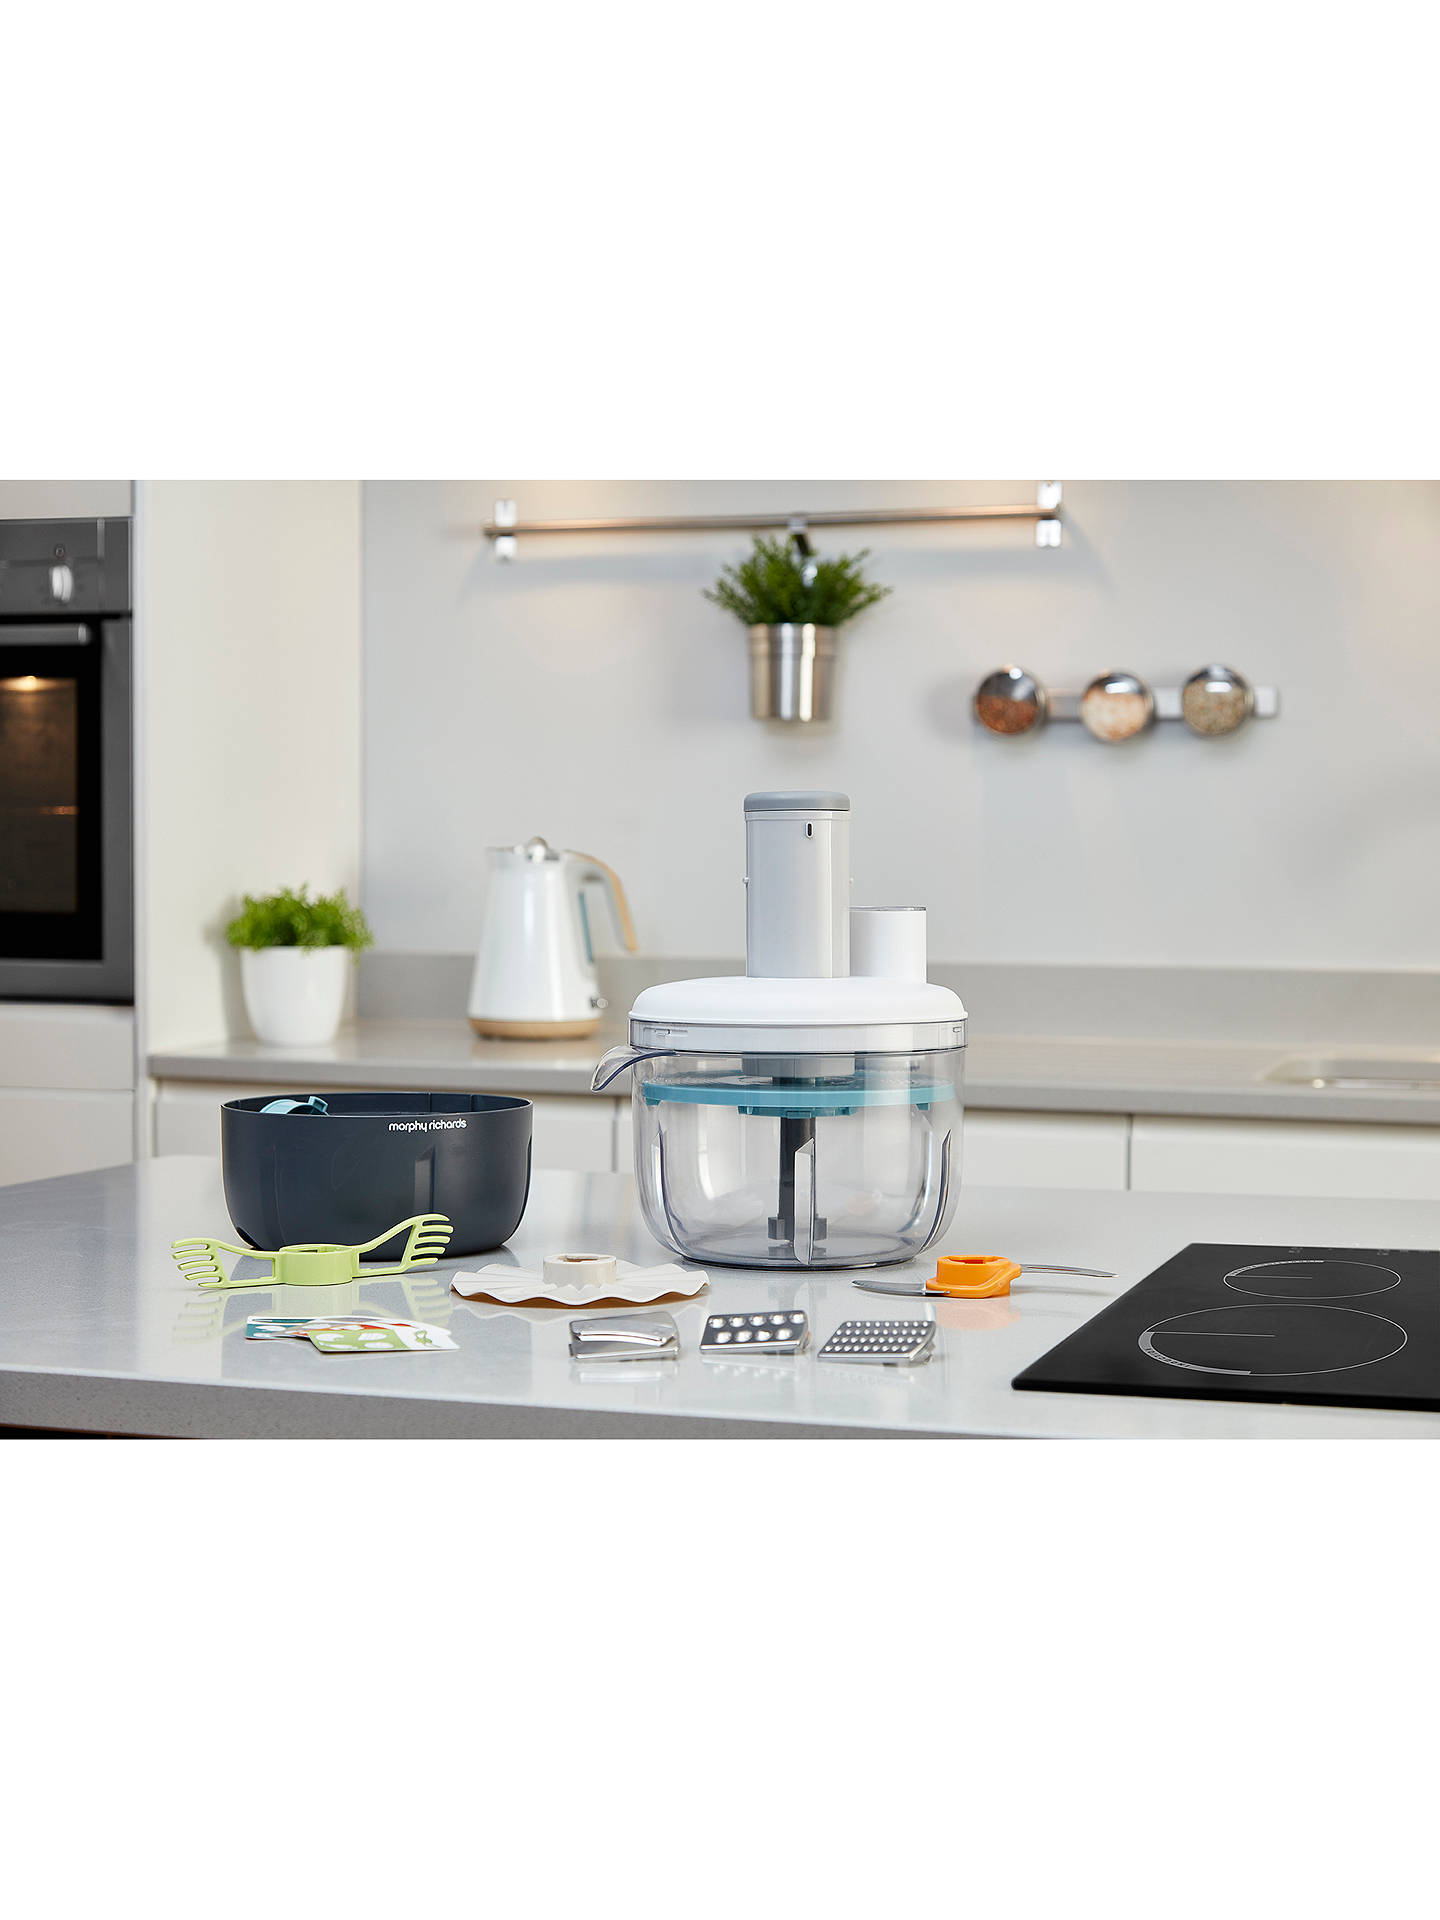 BuyMorphy Richards 401012 Prepstar Food Processor, White Online at johnlewis.com